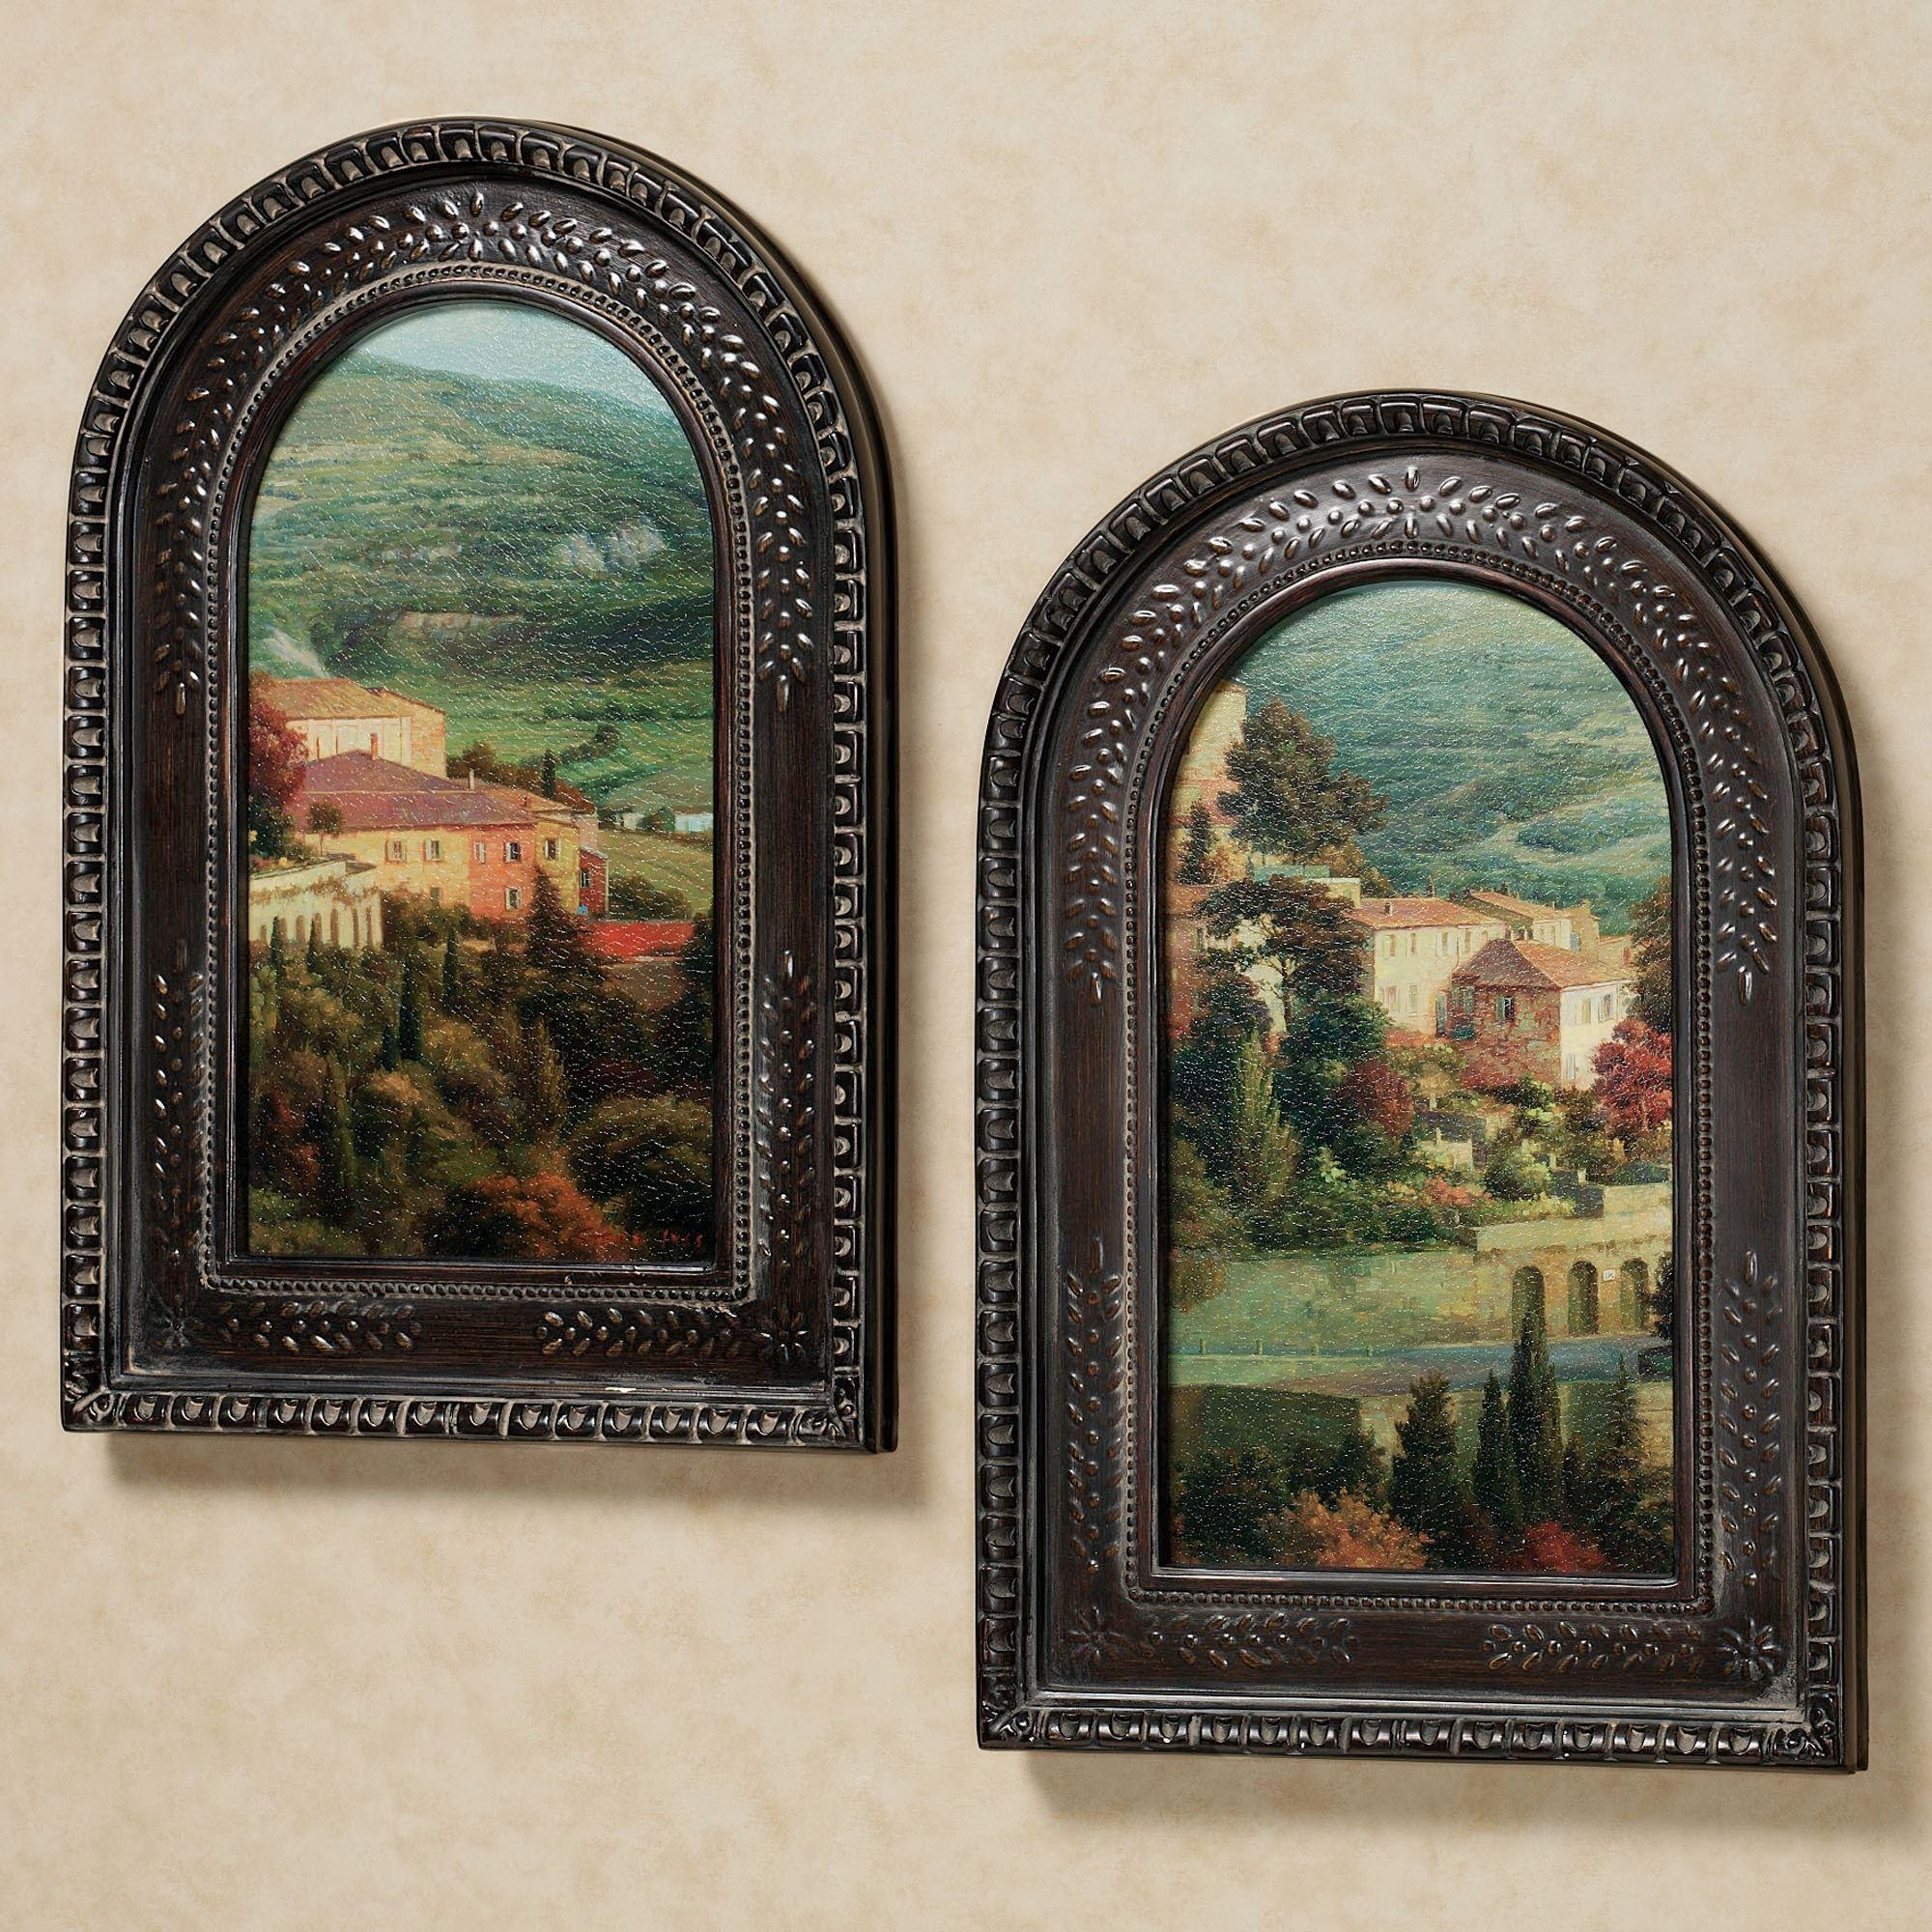 Italian Overlook Framed Wall Art Set Intended For Old Italian Wall Art (View 1 of 20)